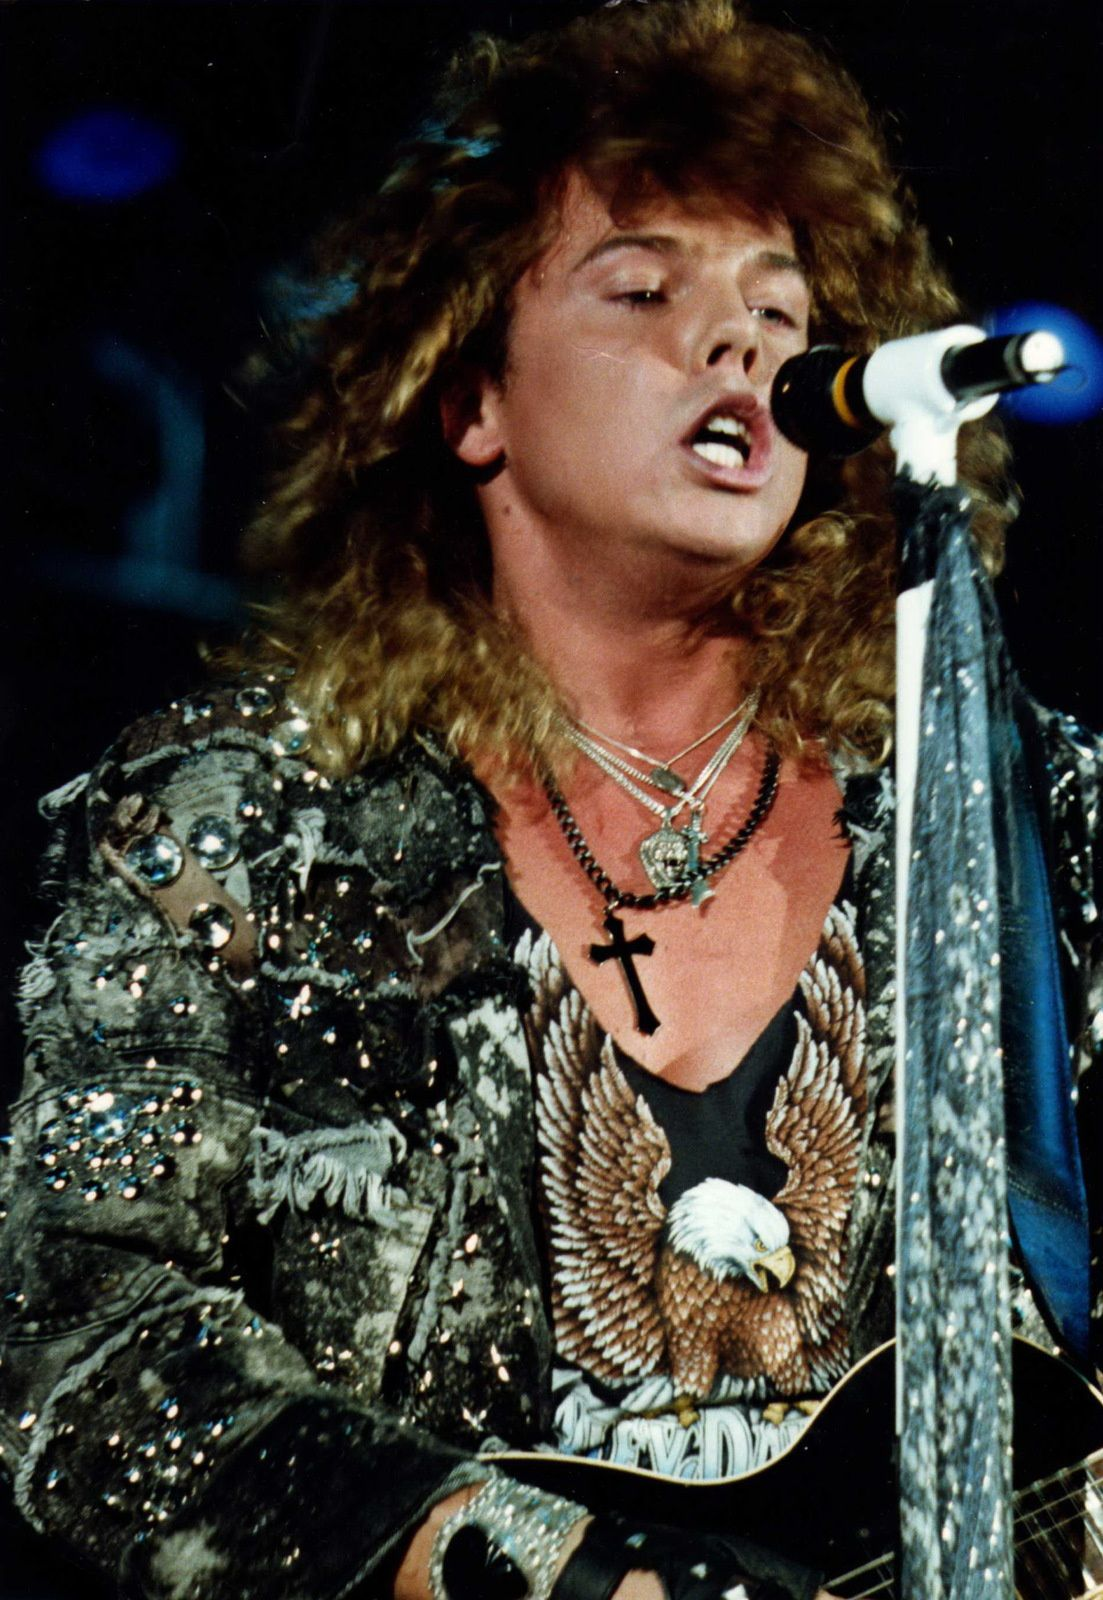 Joey Tempest - On stage